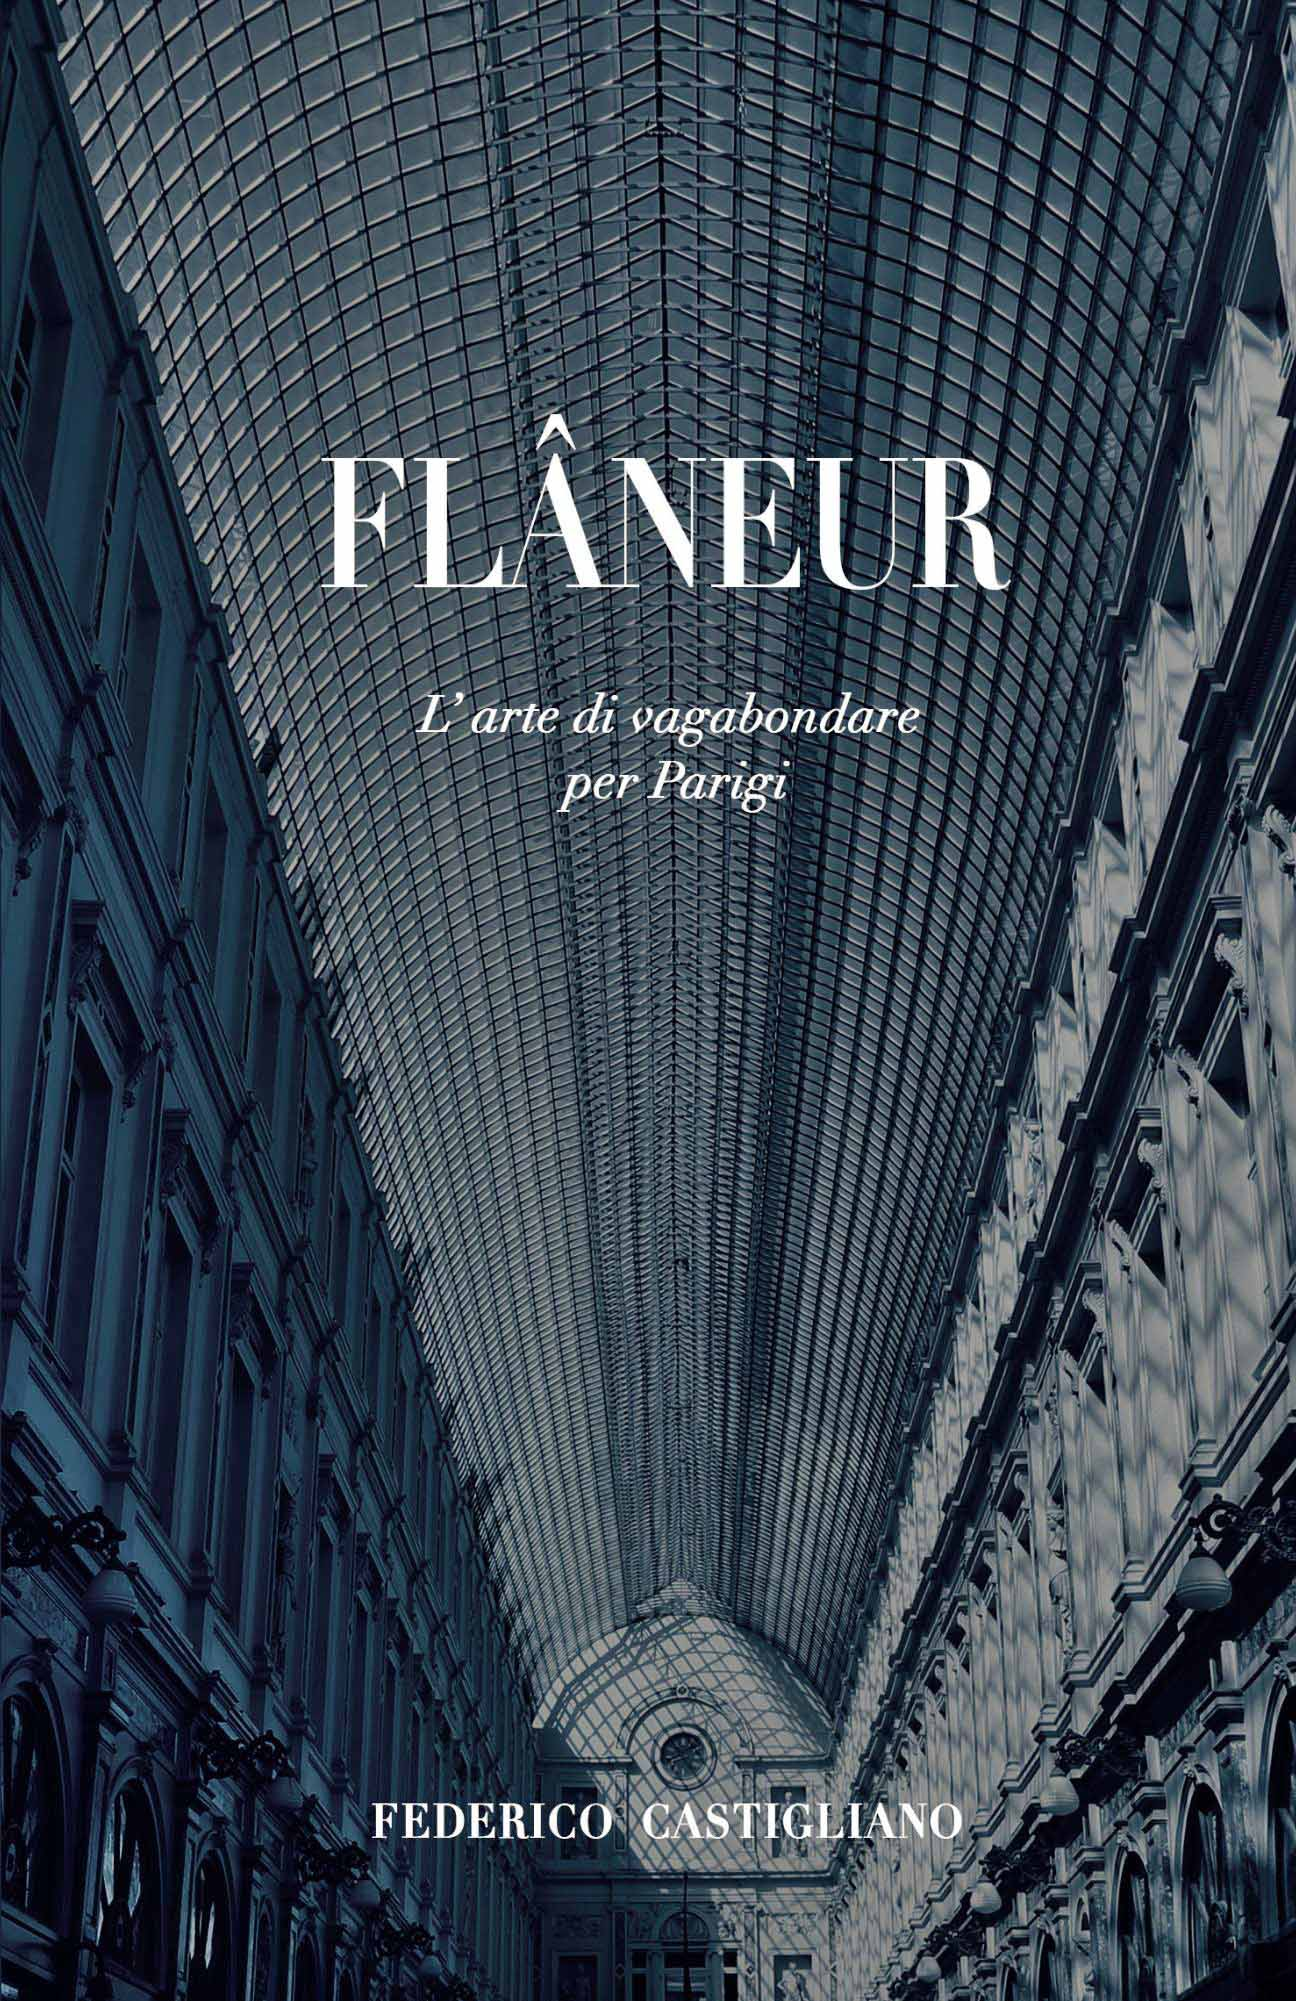 Flaneur-Kindle-cover